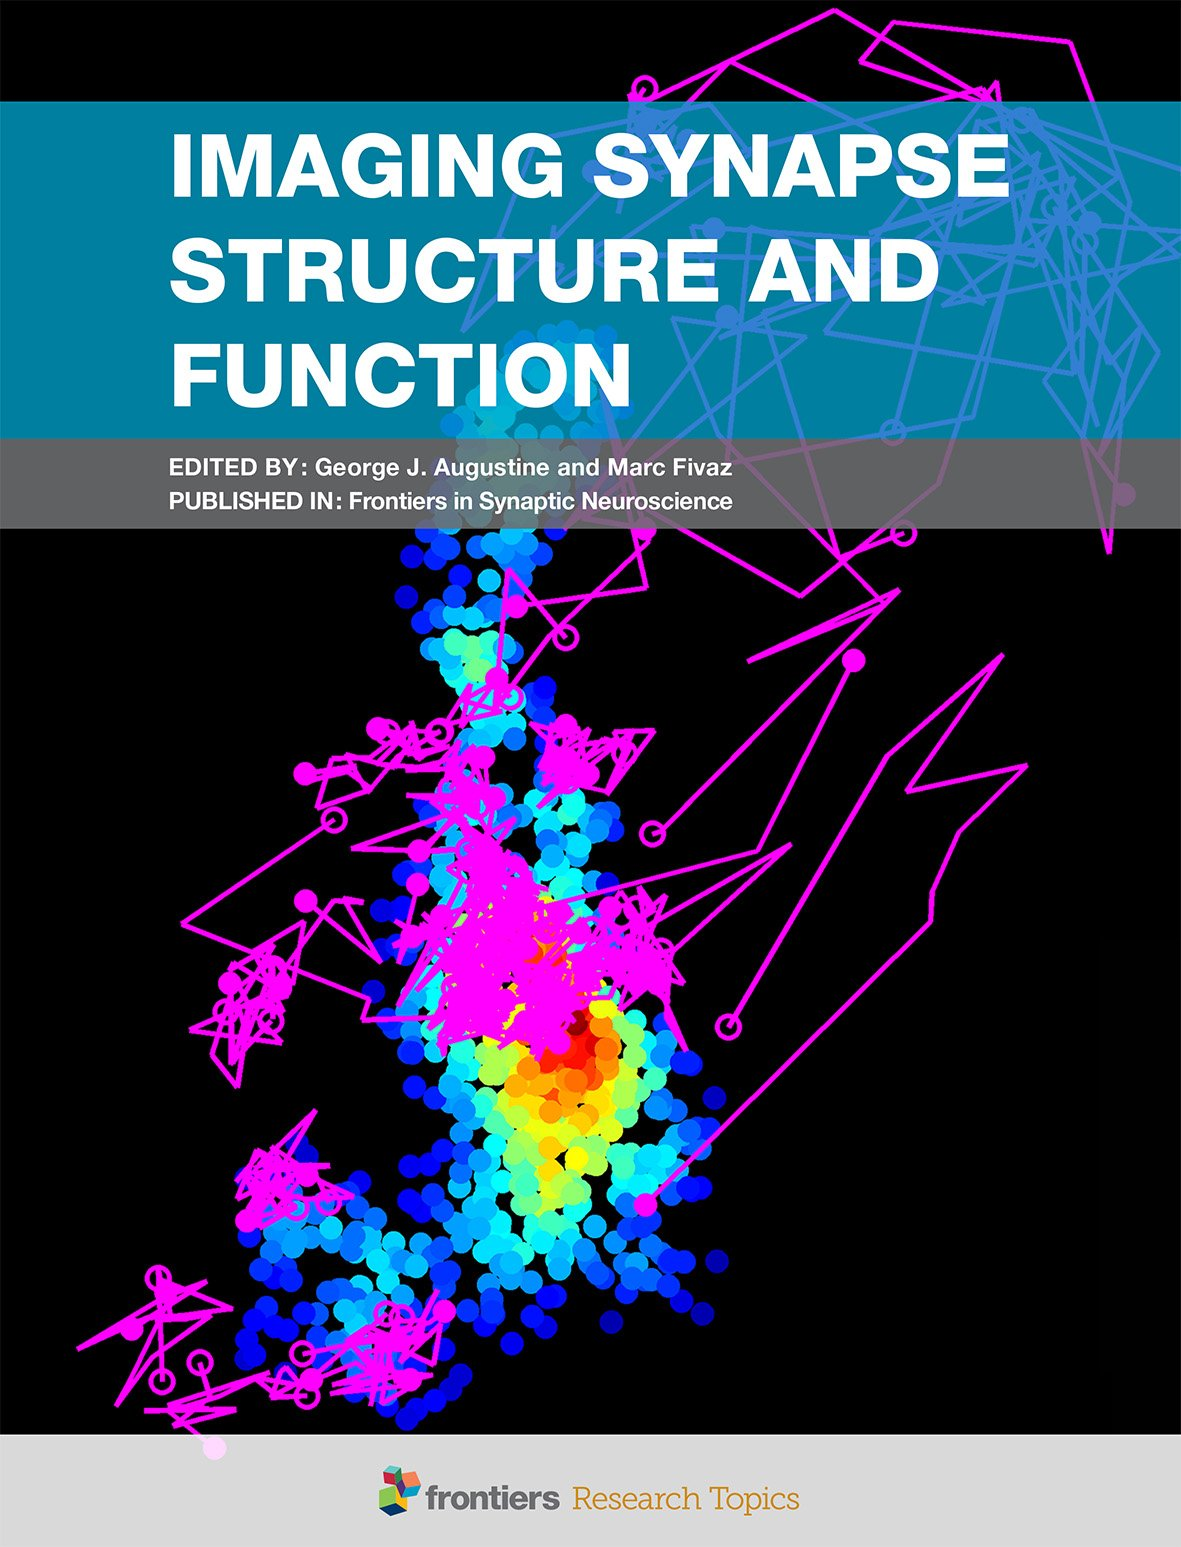 Marc fivaz on twitter imaging synapse structure function marc fivaz on twitter imaging synapse structure function ebook httpstrwvrntbyhk httpstoh2v4mnqwm fandeluxe Choice Image